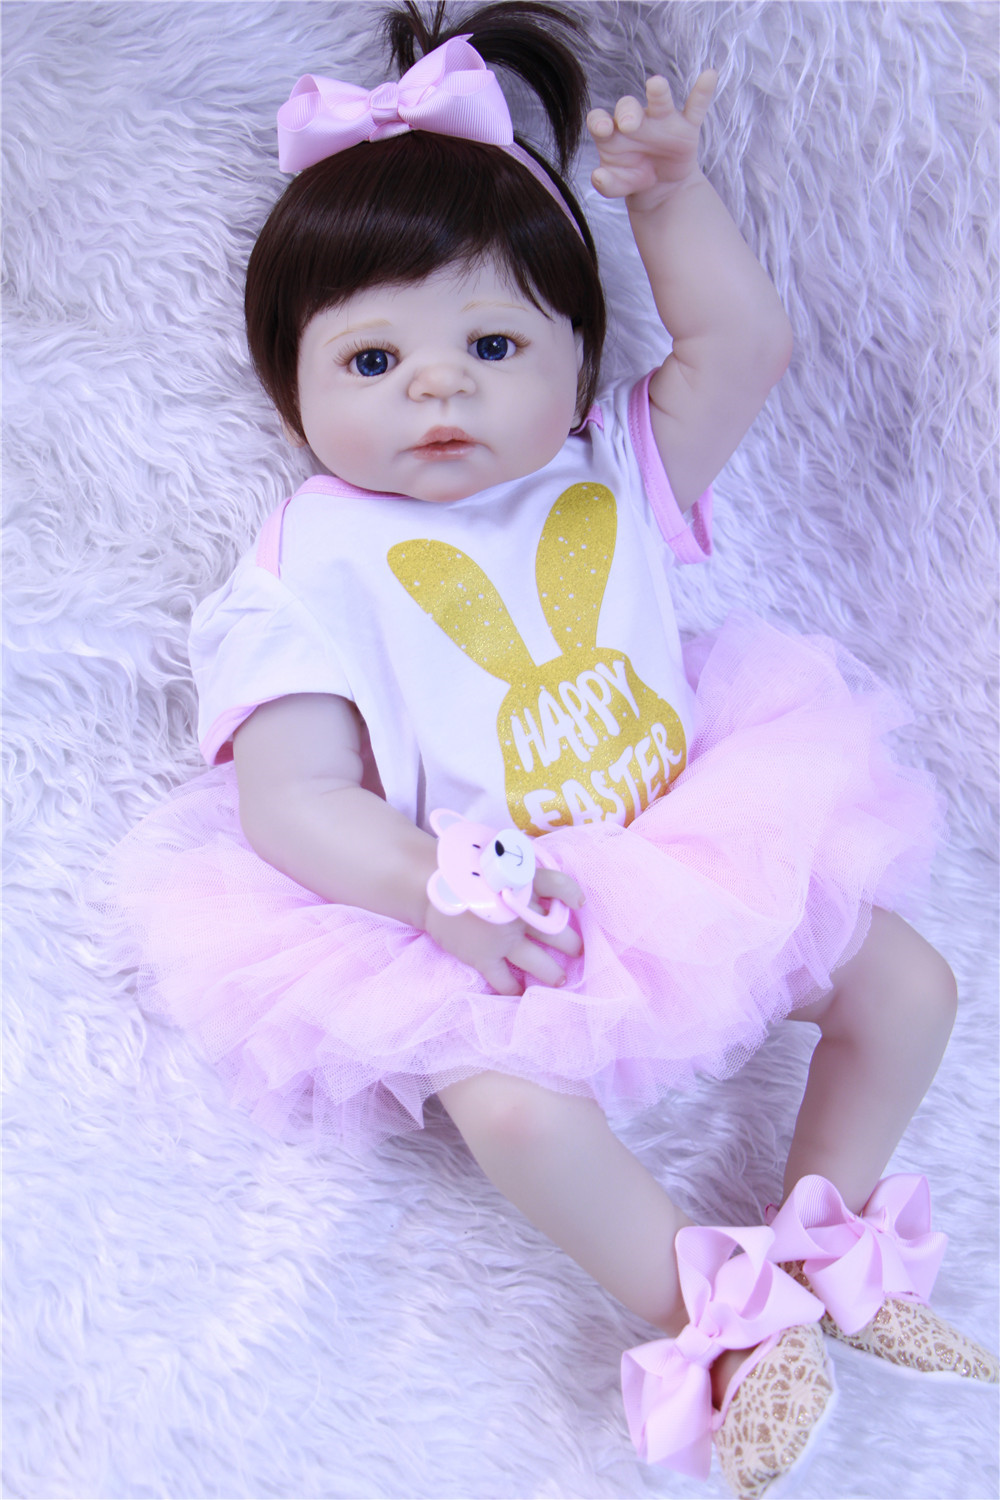 NPKCOLLECTION brand Reborn baby doll 22 Full silicone reborn girl dolls gift children play house toys bebes reborn bonecasNPKCOLLECTION brand Reborn baby doll 22 Full silicone reborn girl dolls gift children play house toys bebes reborn bonecas